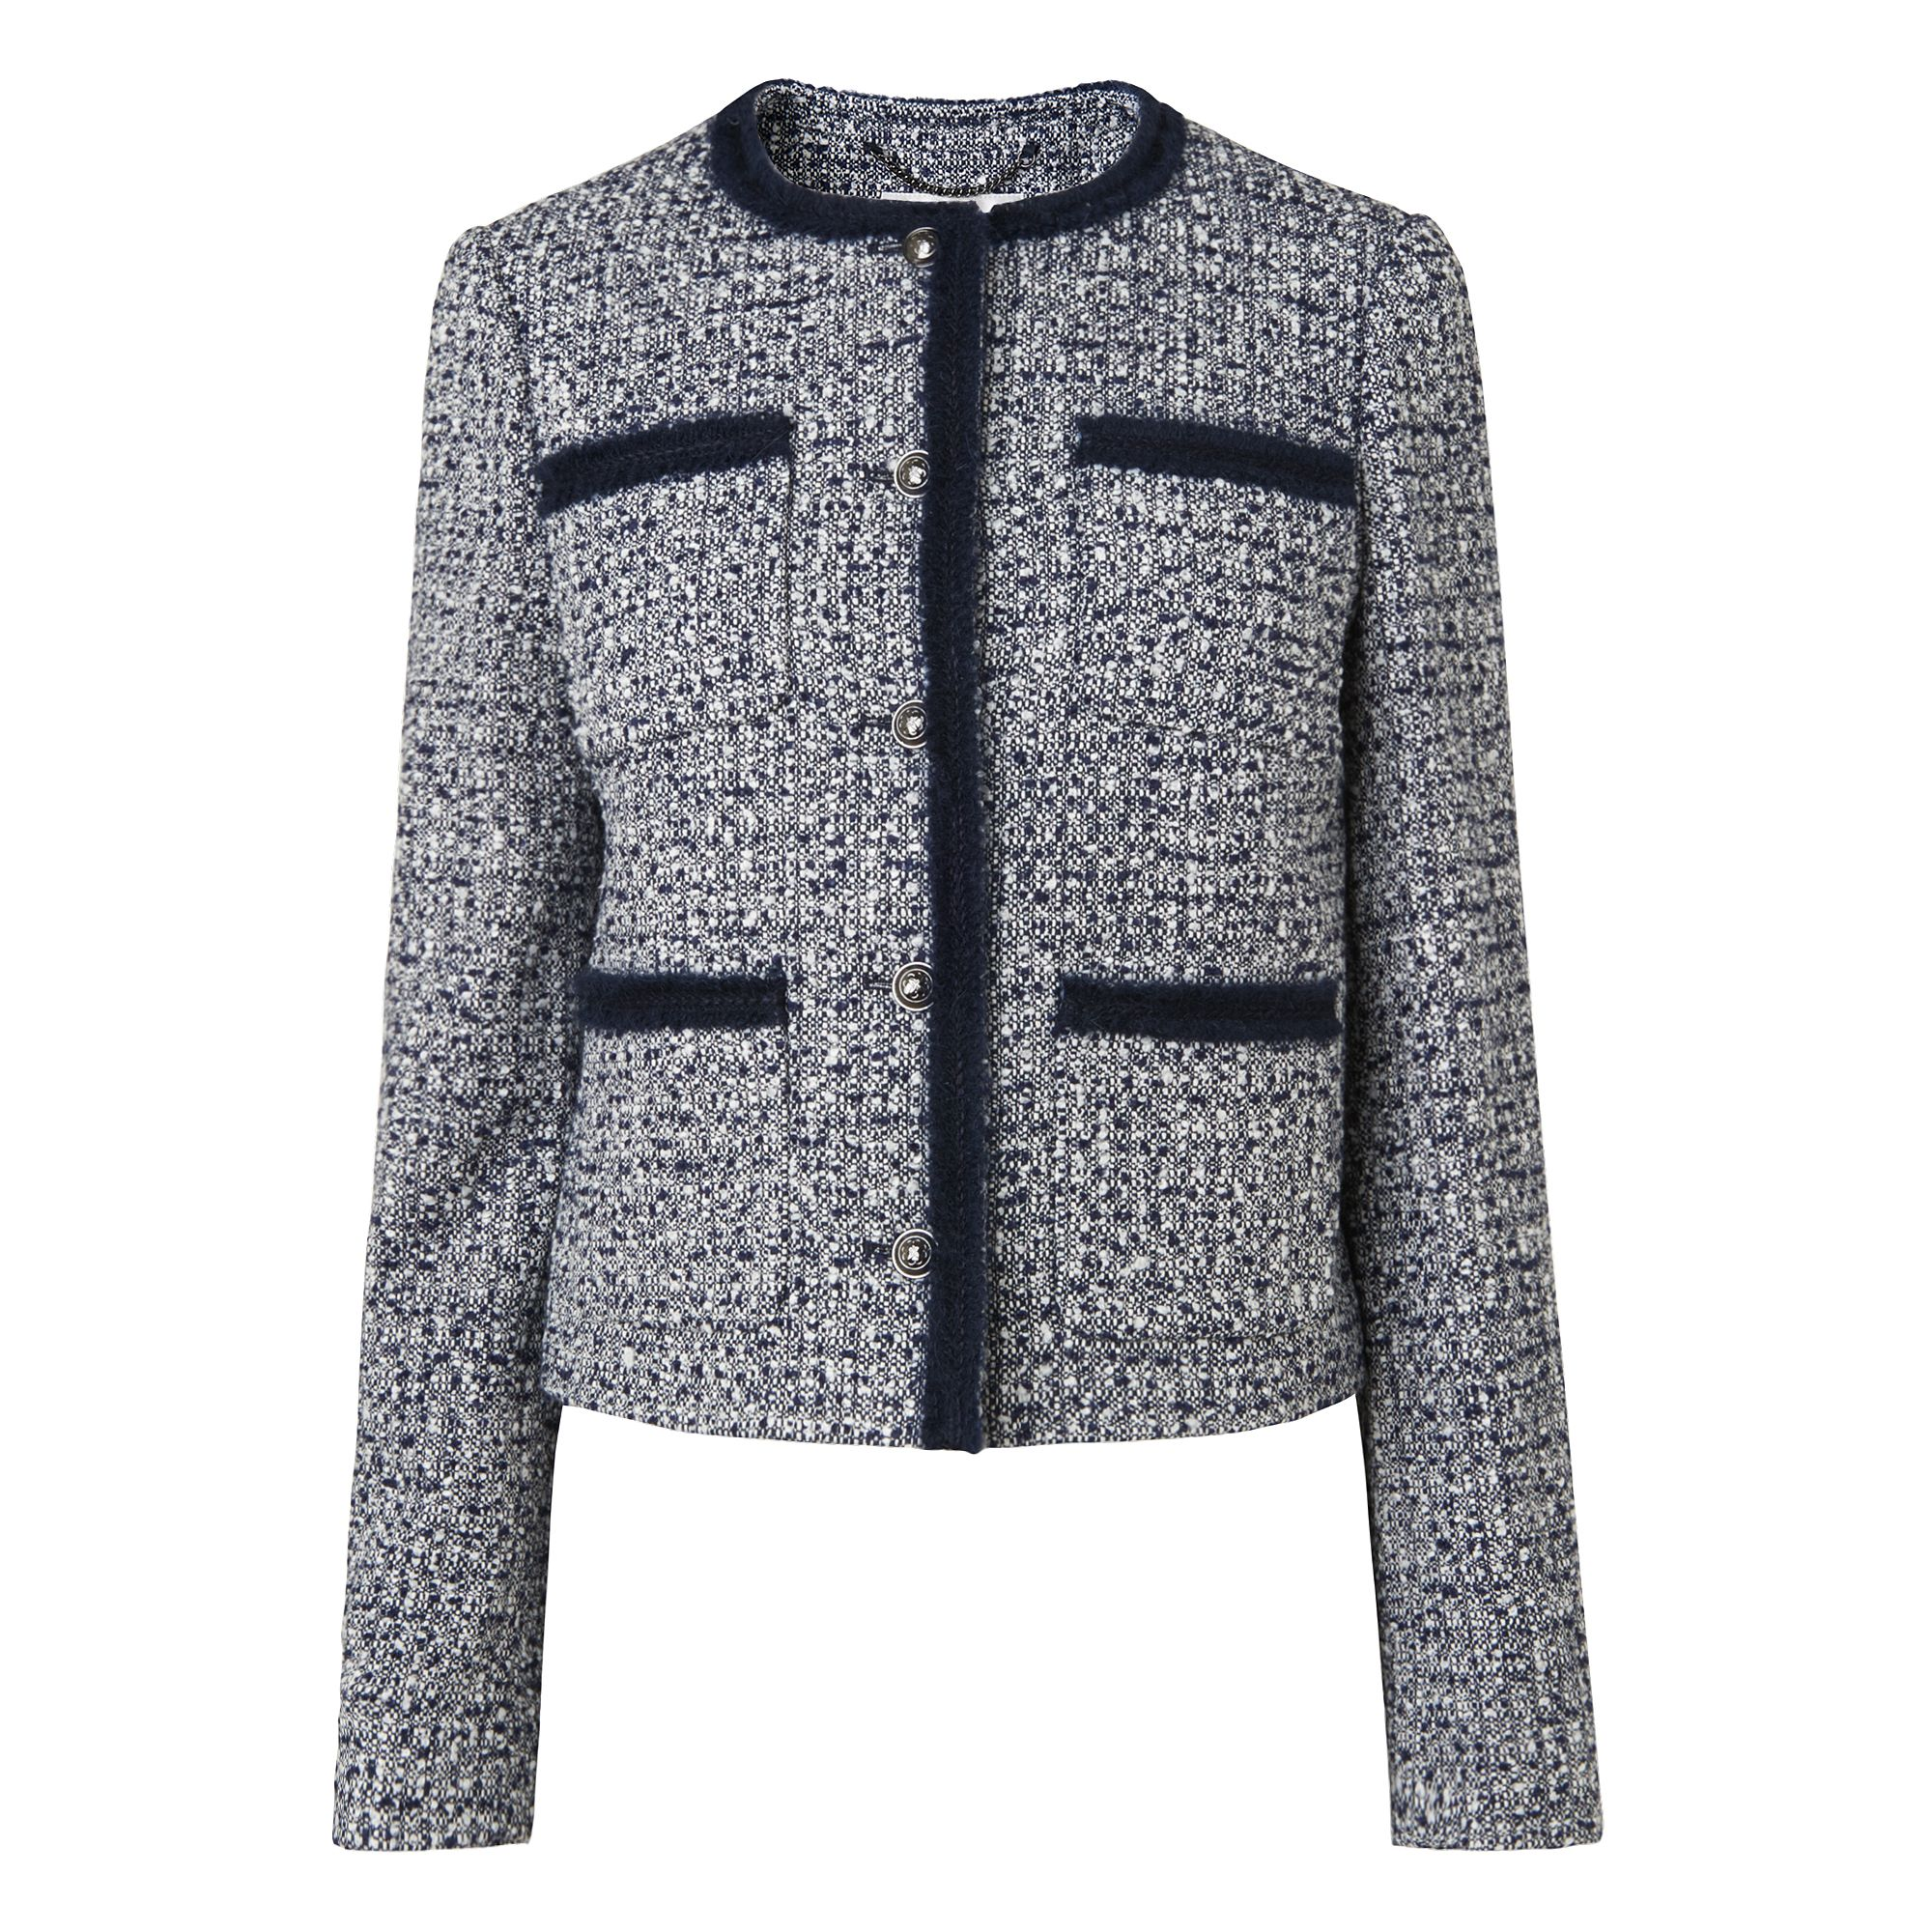 L.K. Bennett Astrala Short Tweed Jackets, Multi-Coloured